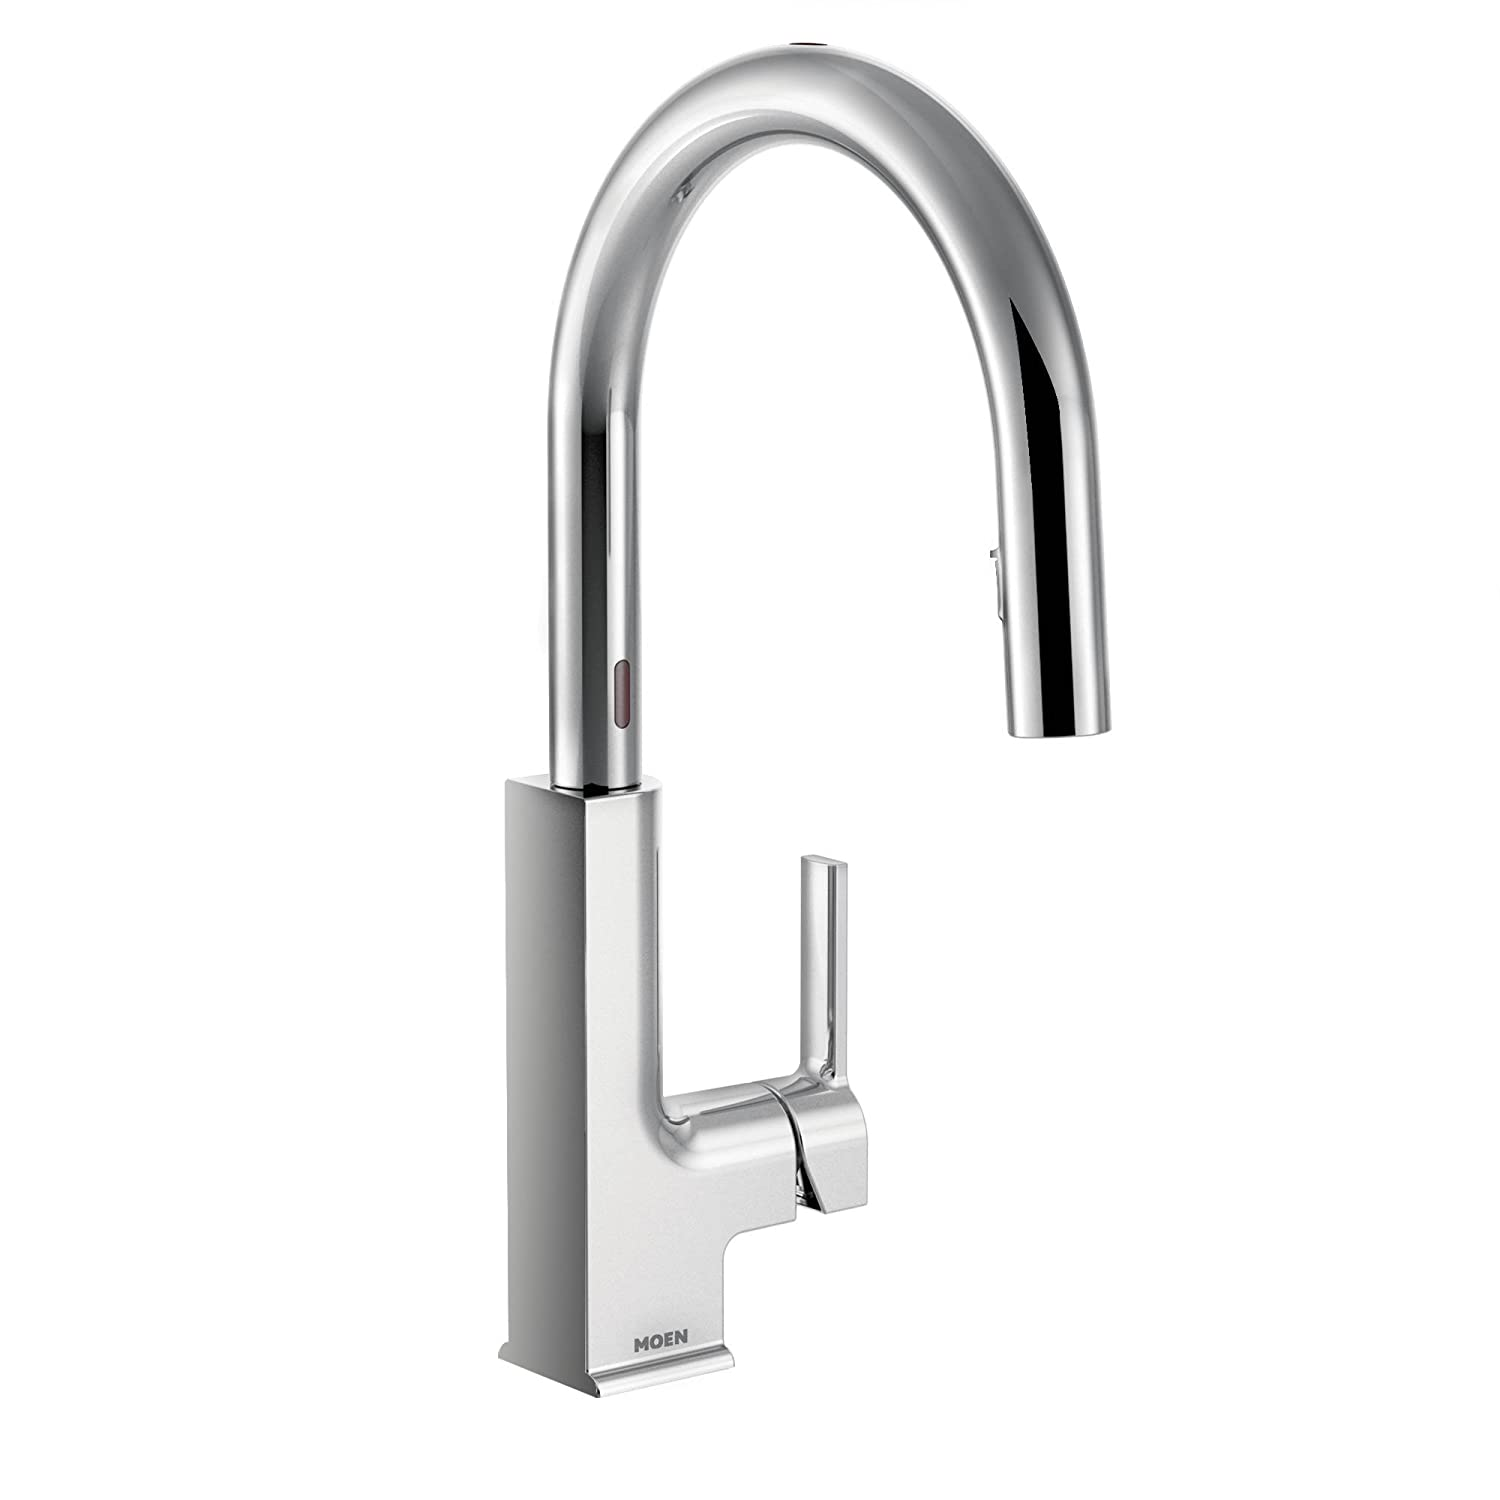 Moen S72308EC STo With Motionsense Two Sensor Touchless One Handle High Arc  Pulldown Kitchen Faucet Featuring Reflex, Chrome     Amazon.com